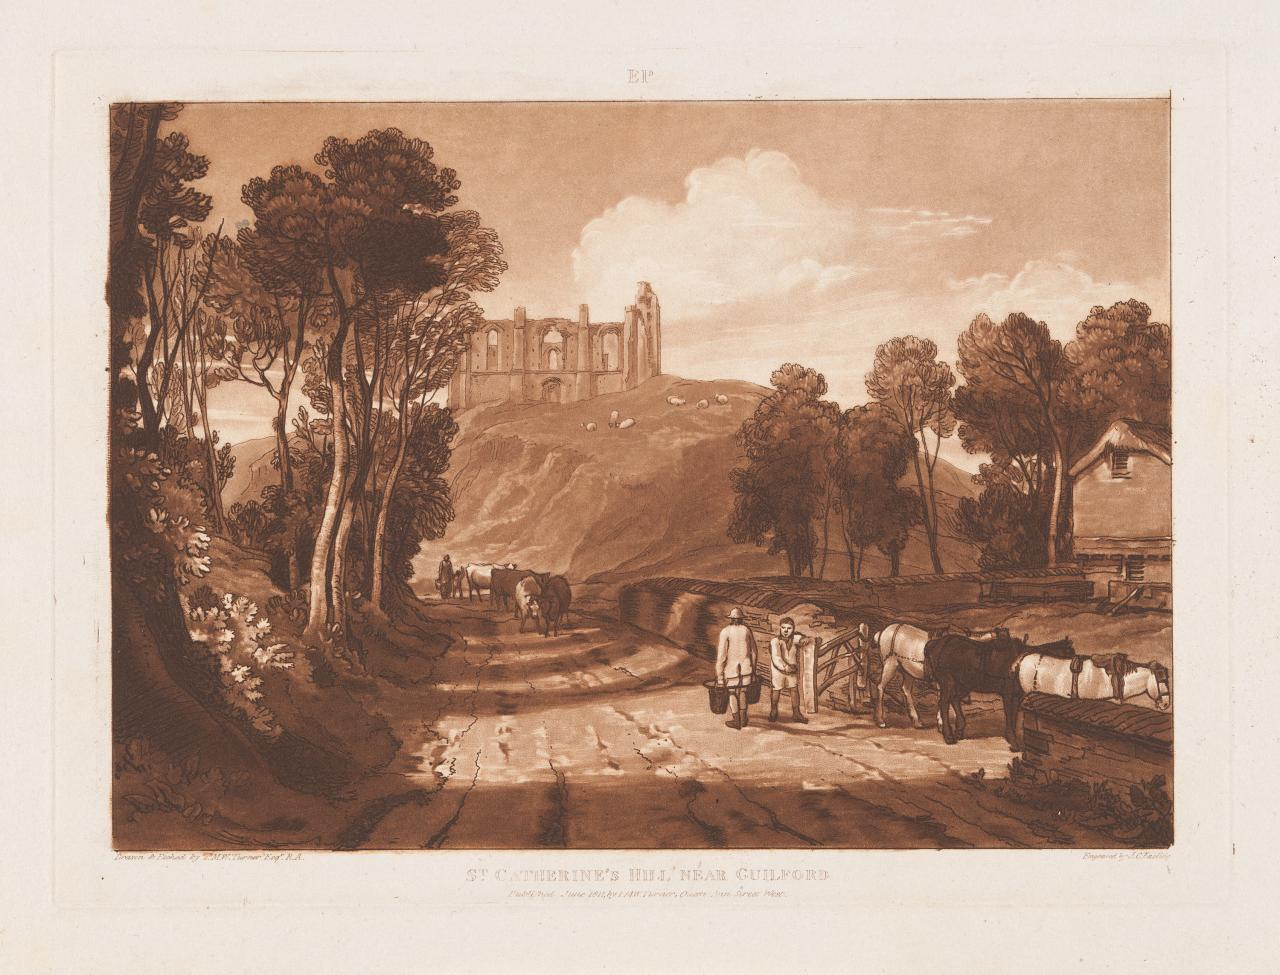 St.Catherine's Hill near Guildford (Liber Studiorum)